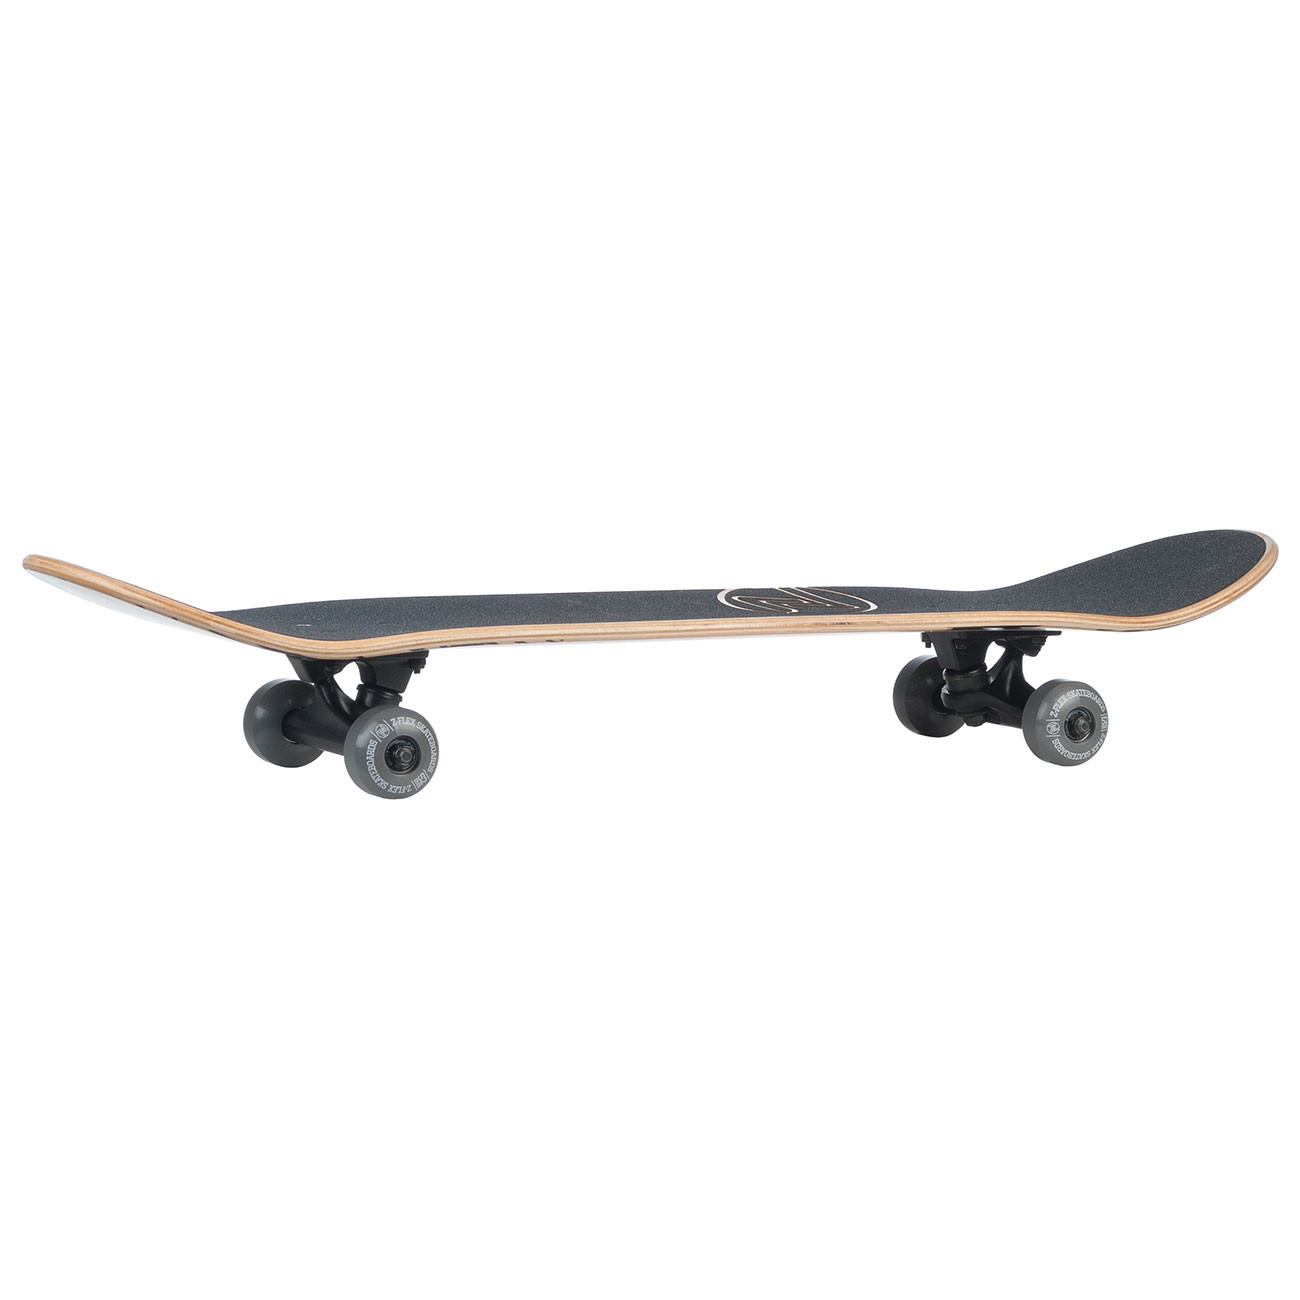 Skateboard Z-Flex Double Kick 7.75